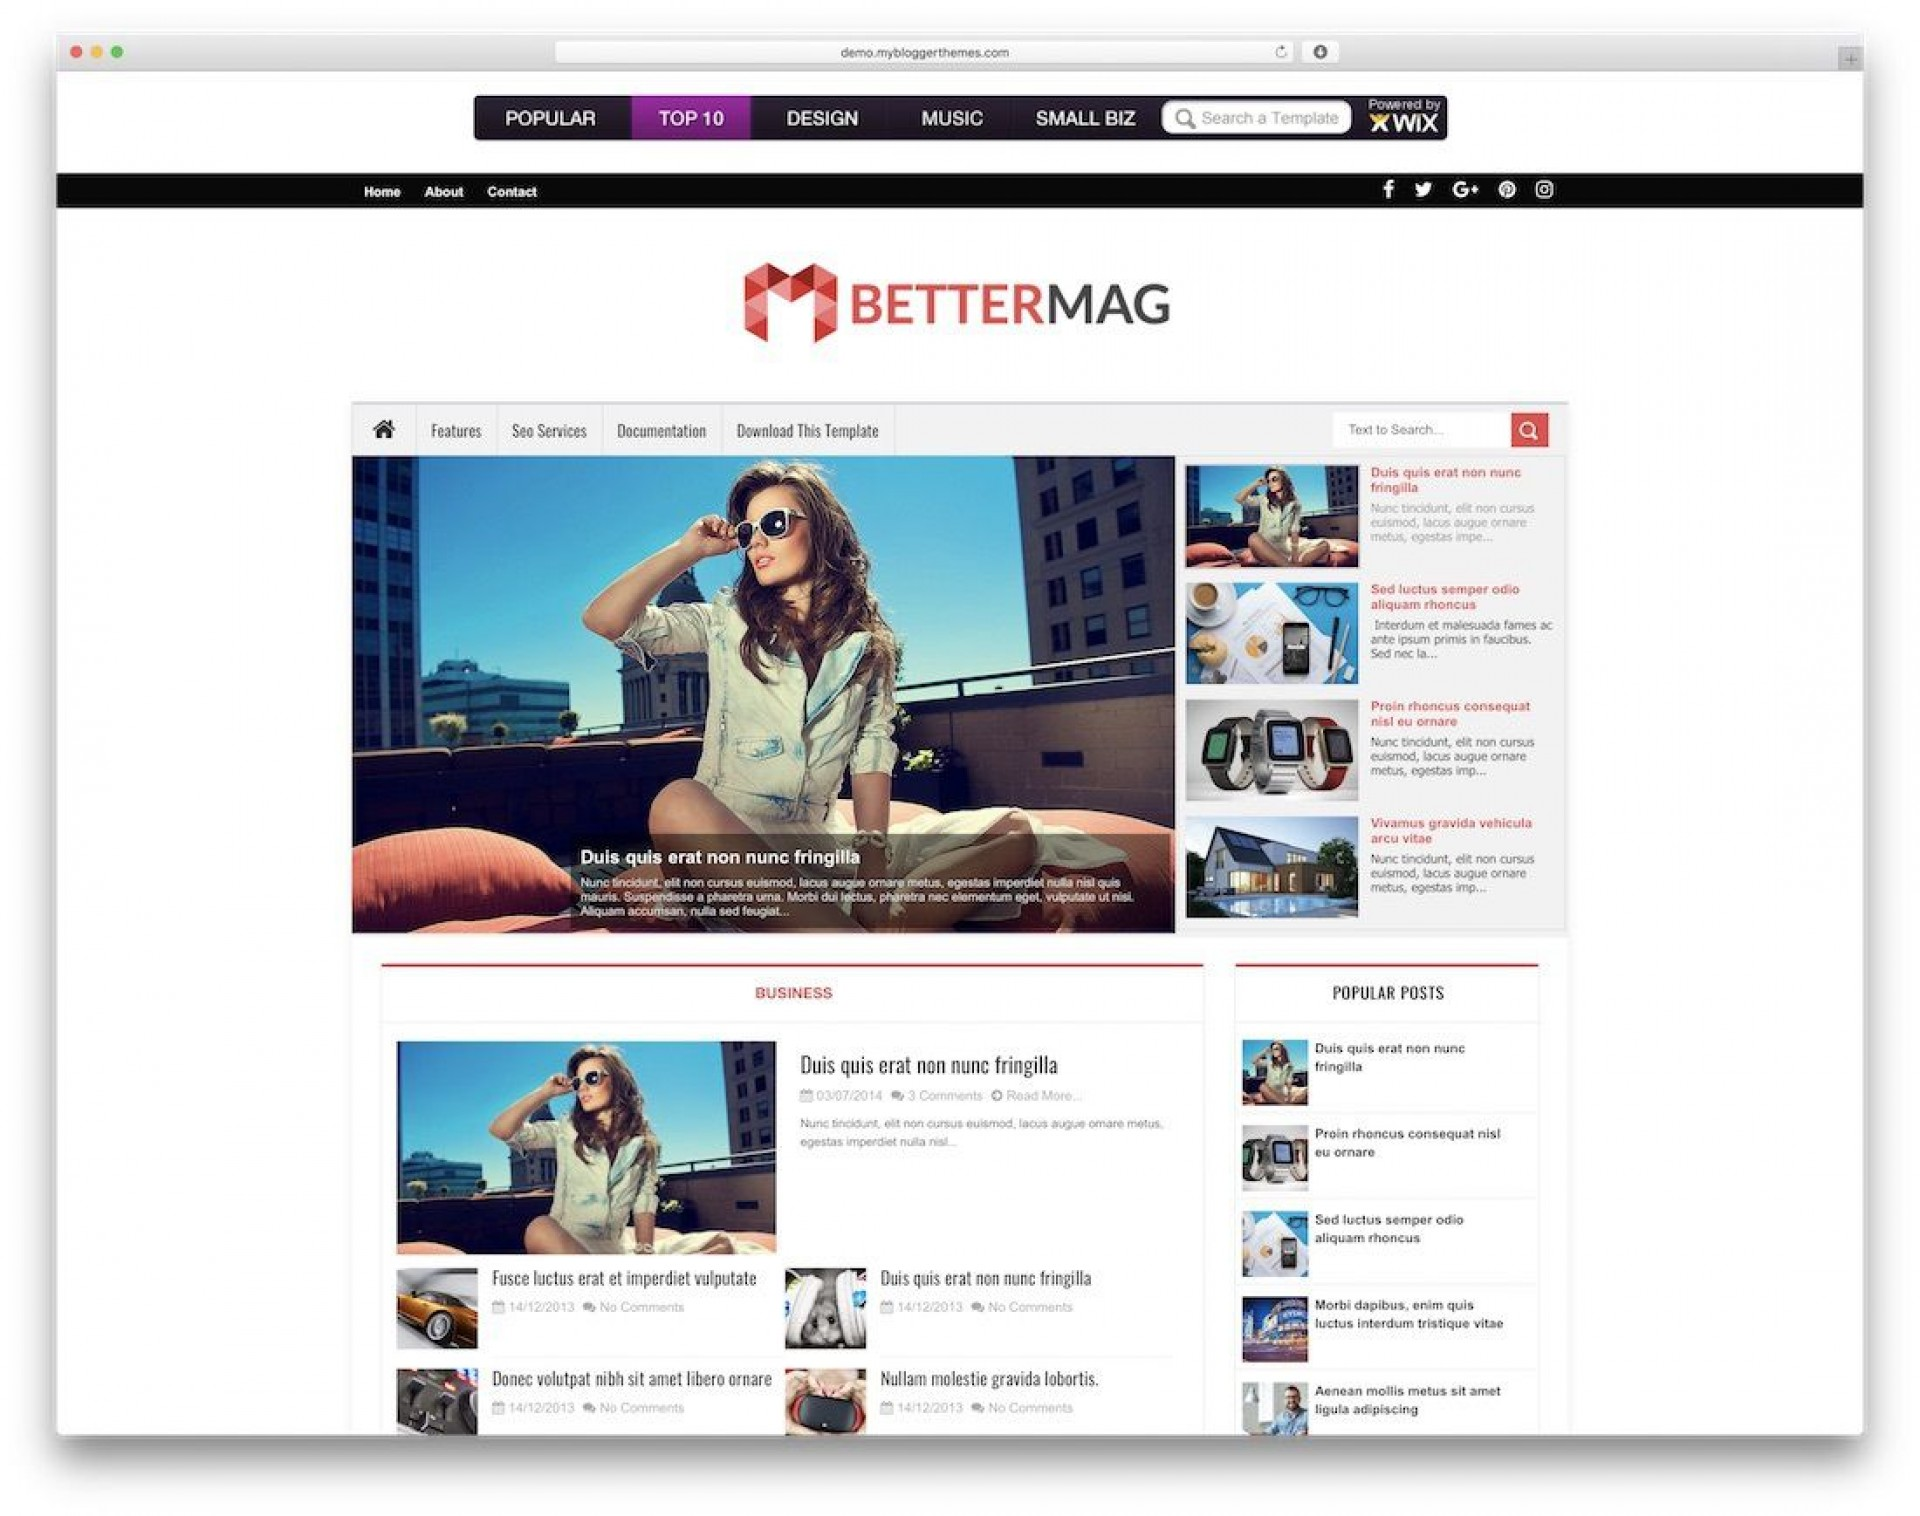 002 Magnificent Best Free Responsive Blogger Template Sample  2019 Mobile Friendly Top1920